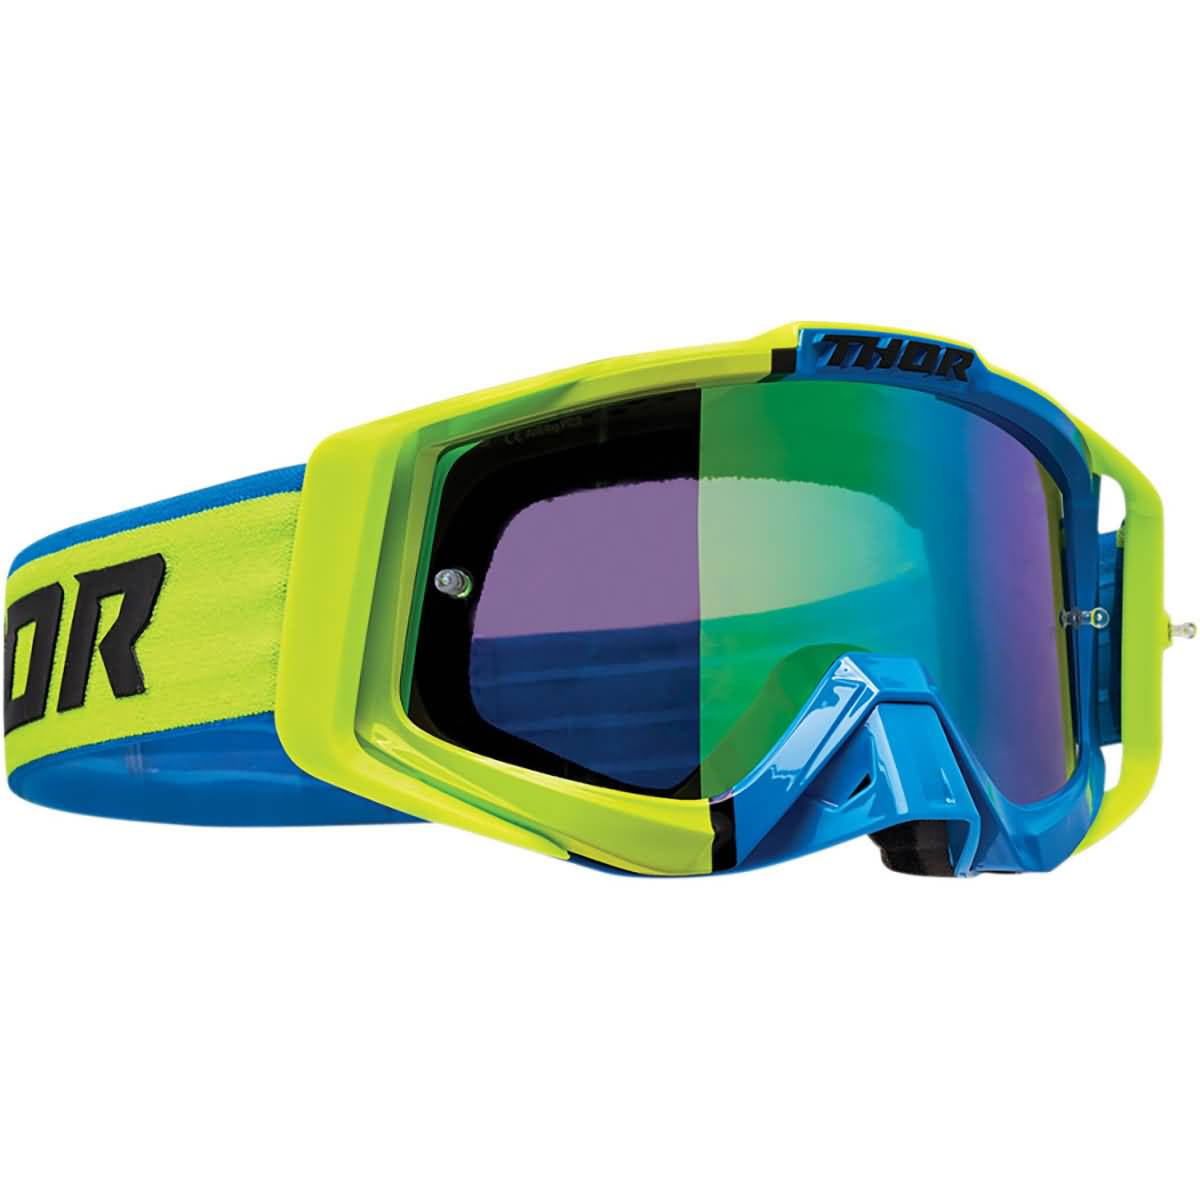 Thor MX Sniper Pro Divide Men's Off-Road Goggles-2601